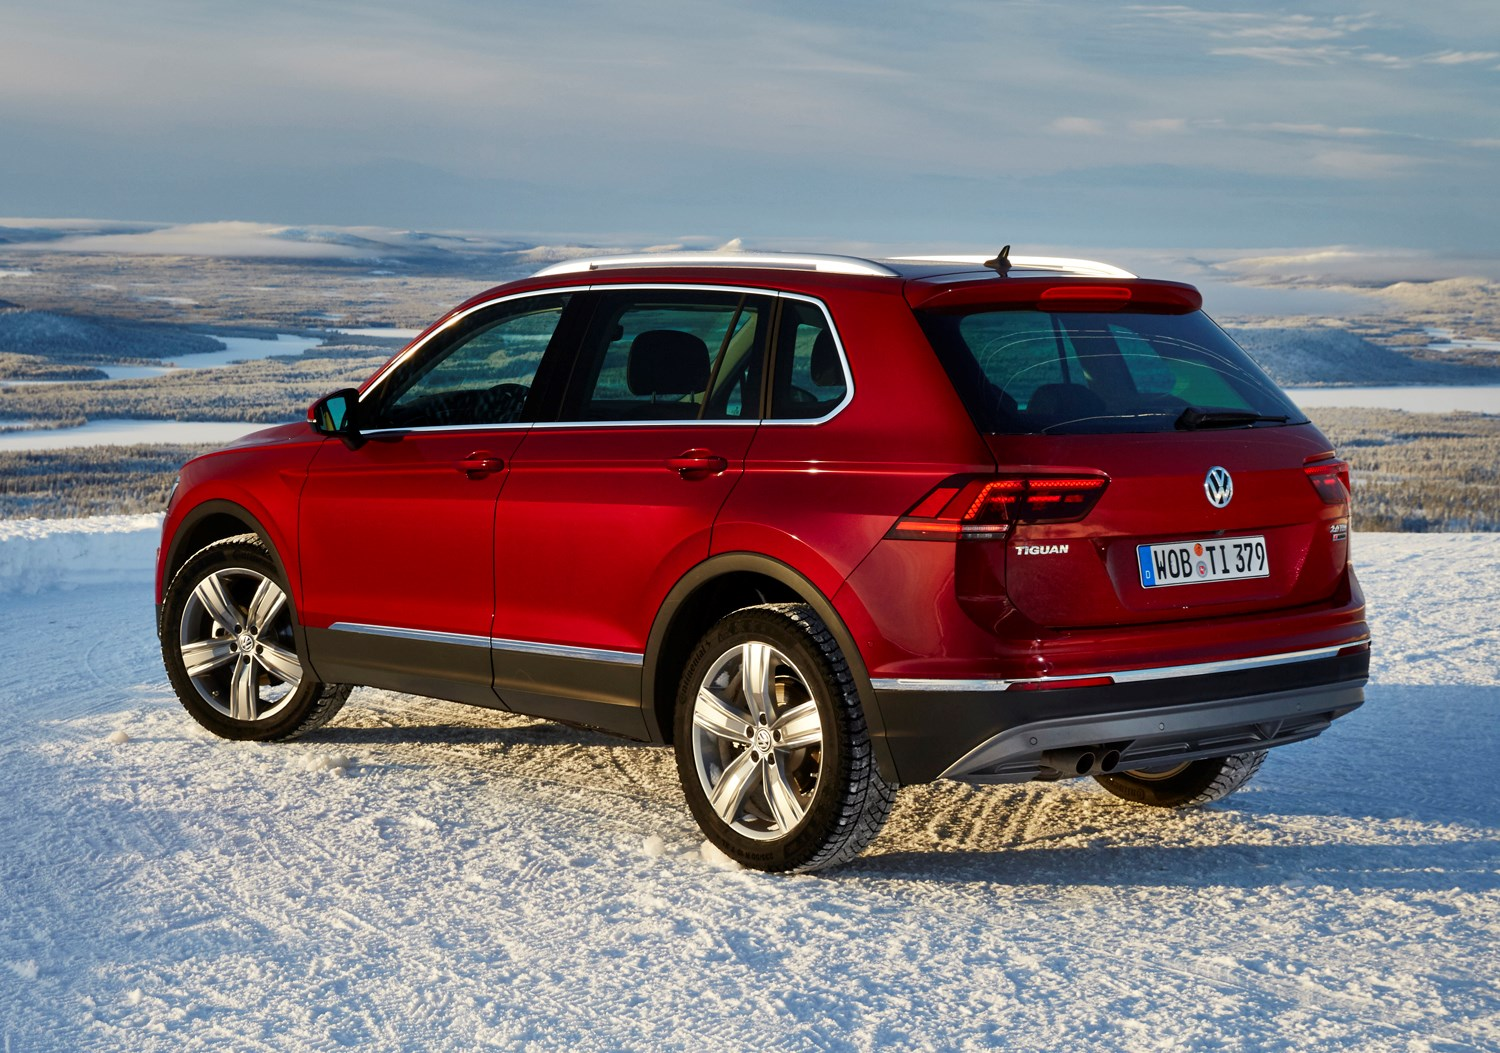 Volkswagen Tiguan Estate (2016 - ) Features, Equipment and Accessories | Parkers